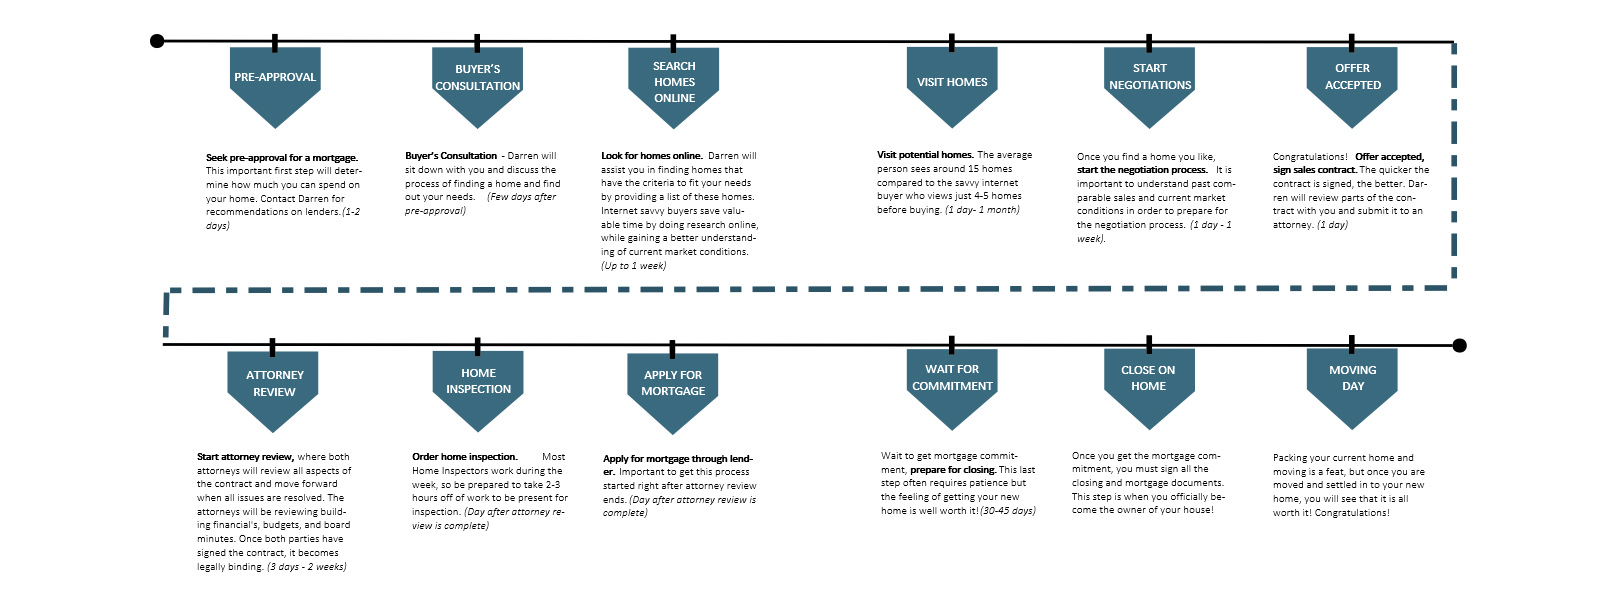 Home Purchase Timeline - Hoboken/JC Real Estate